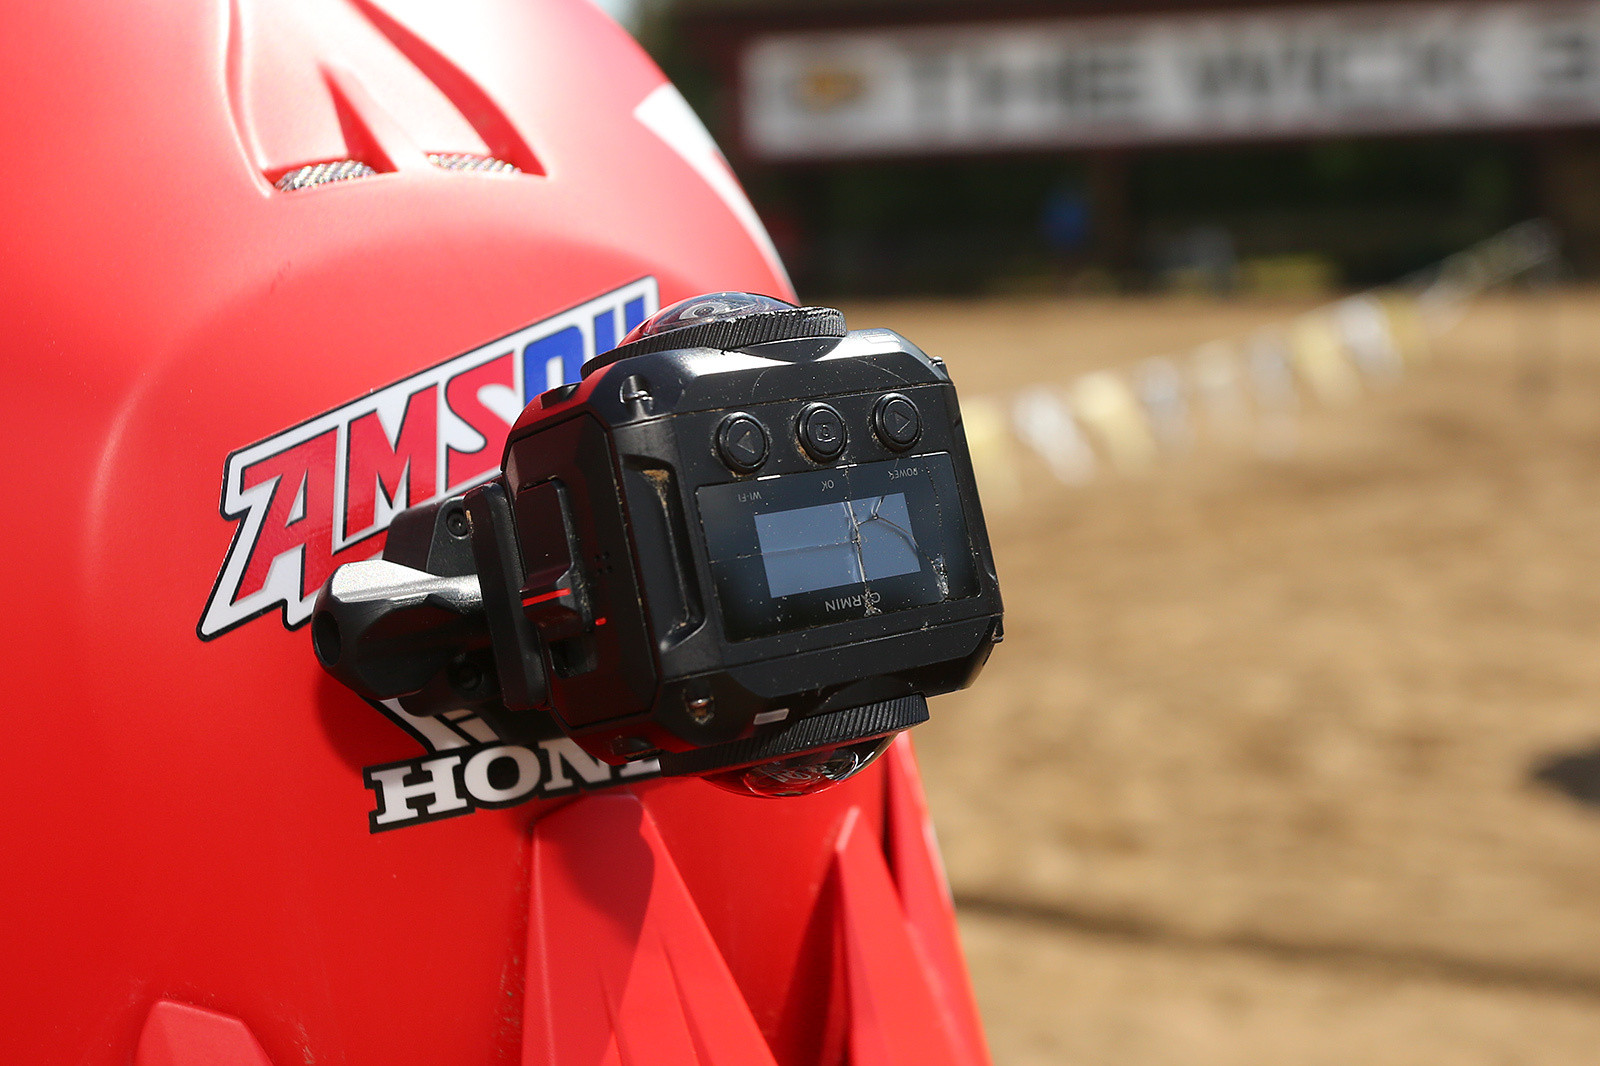 In the forum a few of you had asked what the Garmin 360 cameras looked like. They have front- and rear-facing lenses, and software stitches it all together. The cracked top screen? Because motocross.